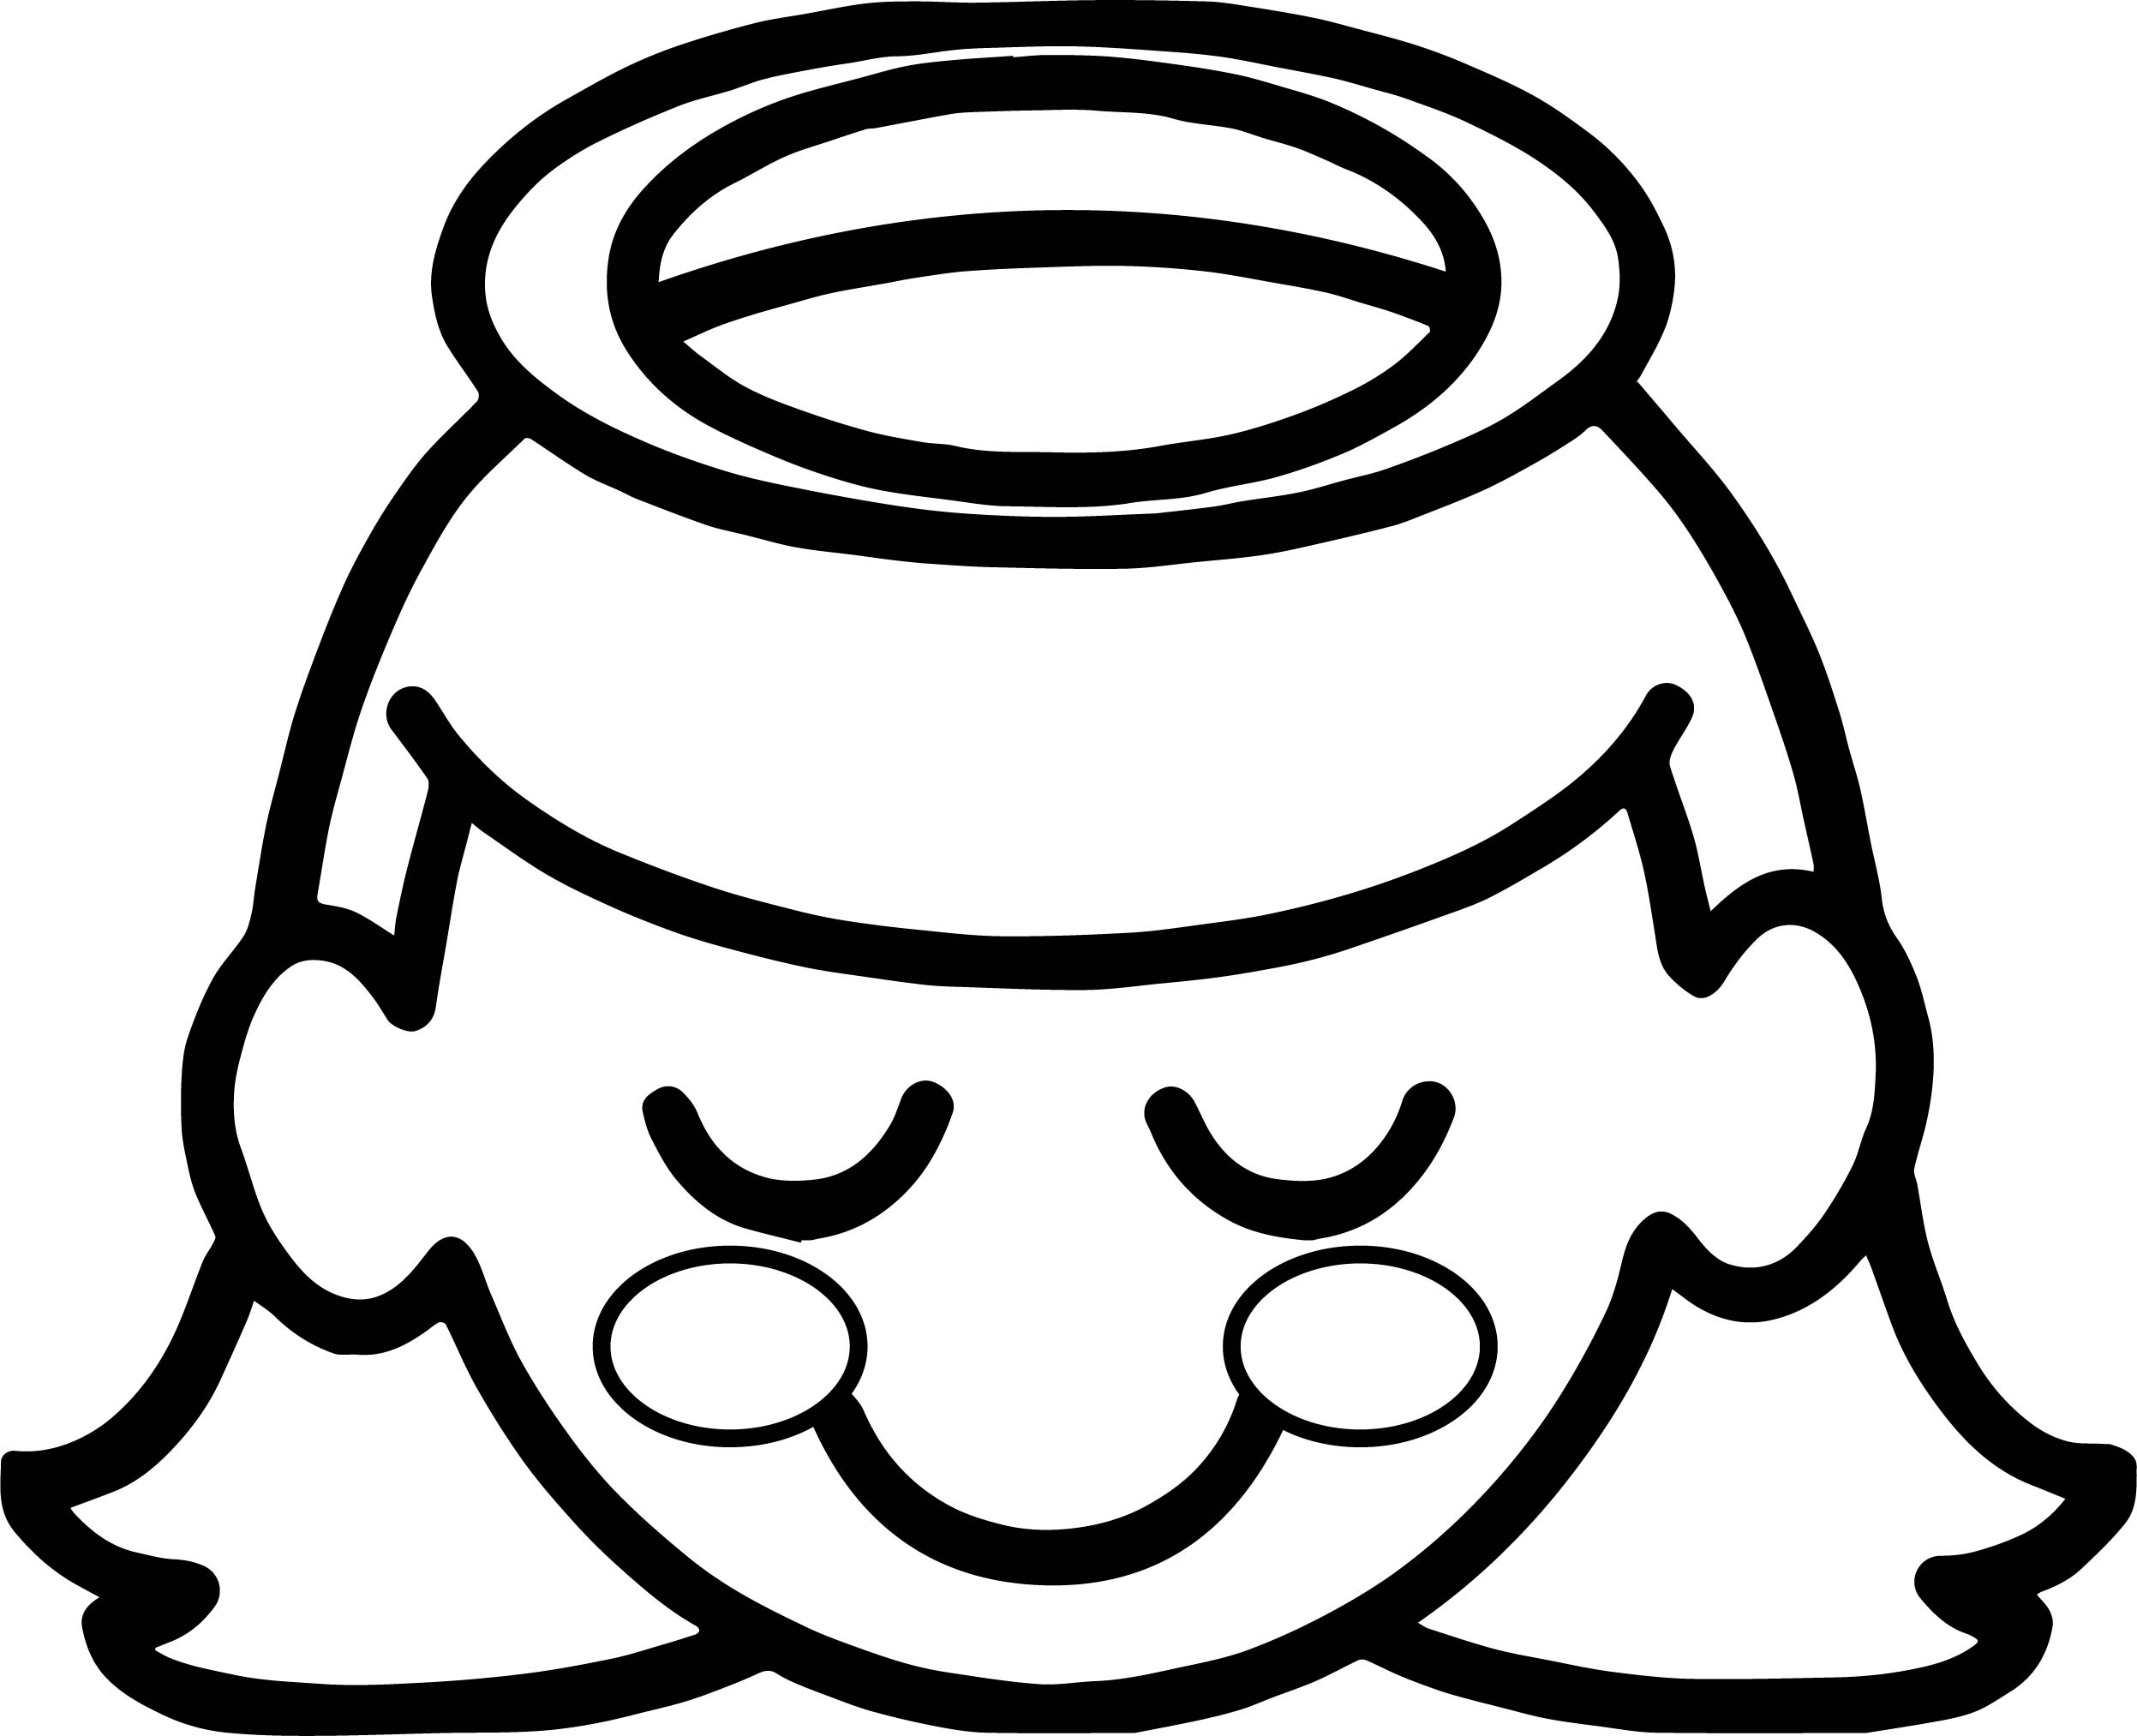 2494x2026 Halo A Little Girl Angel With Halo Over Her Head Coloring Page